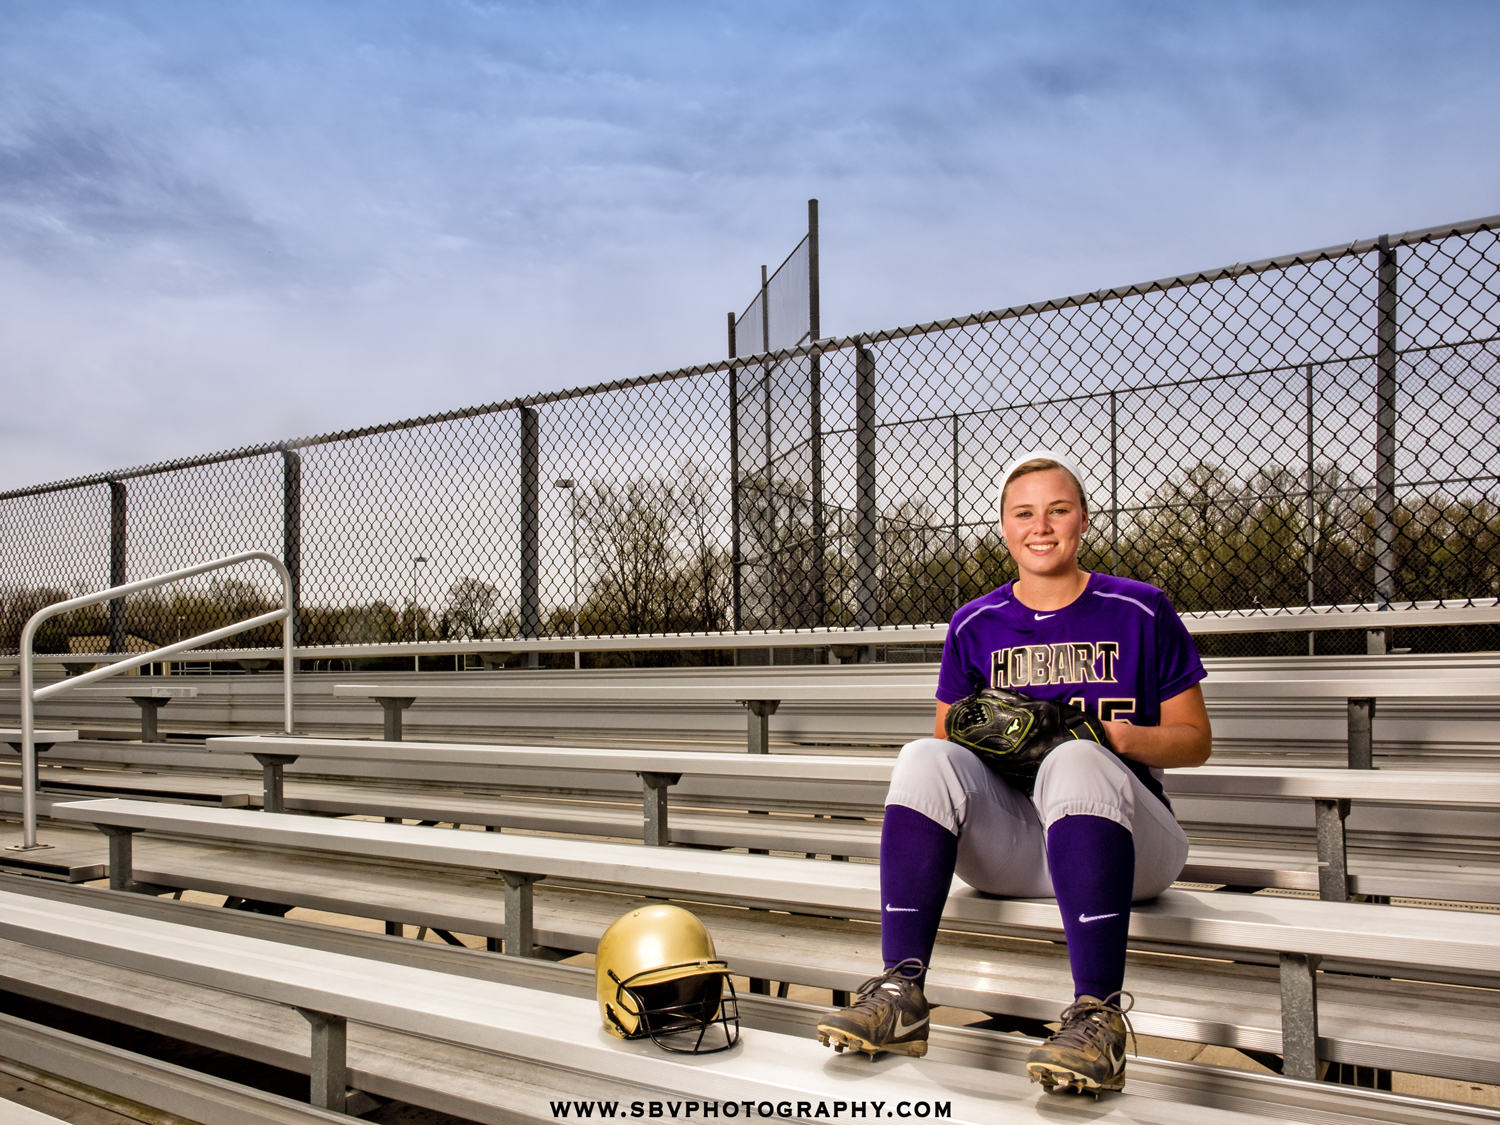 Senior girl from Hobart High School poses on the bleachers at the baseball field.